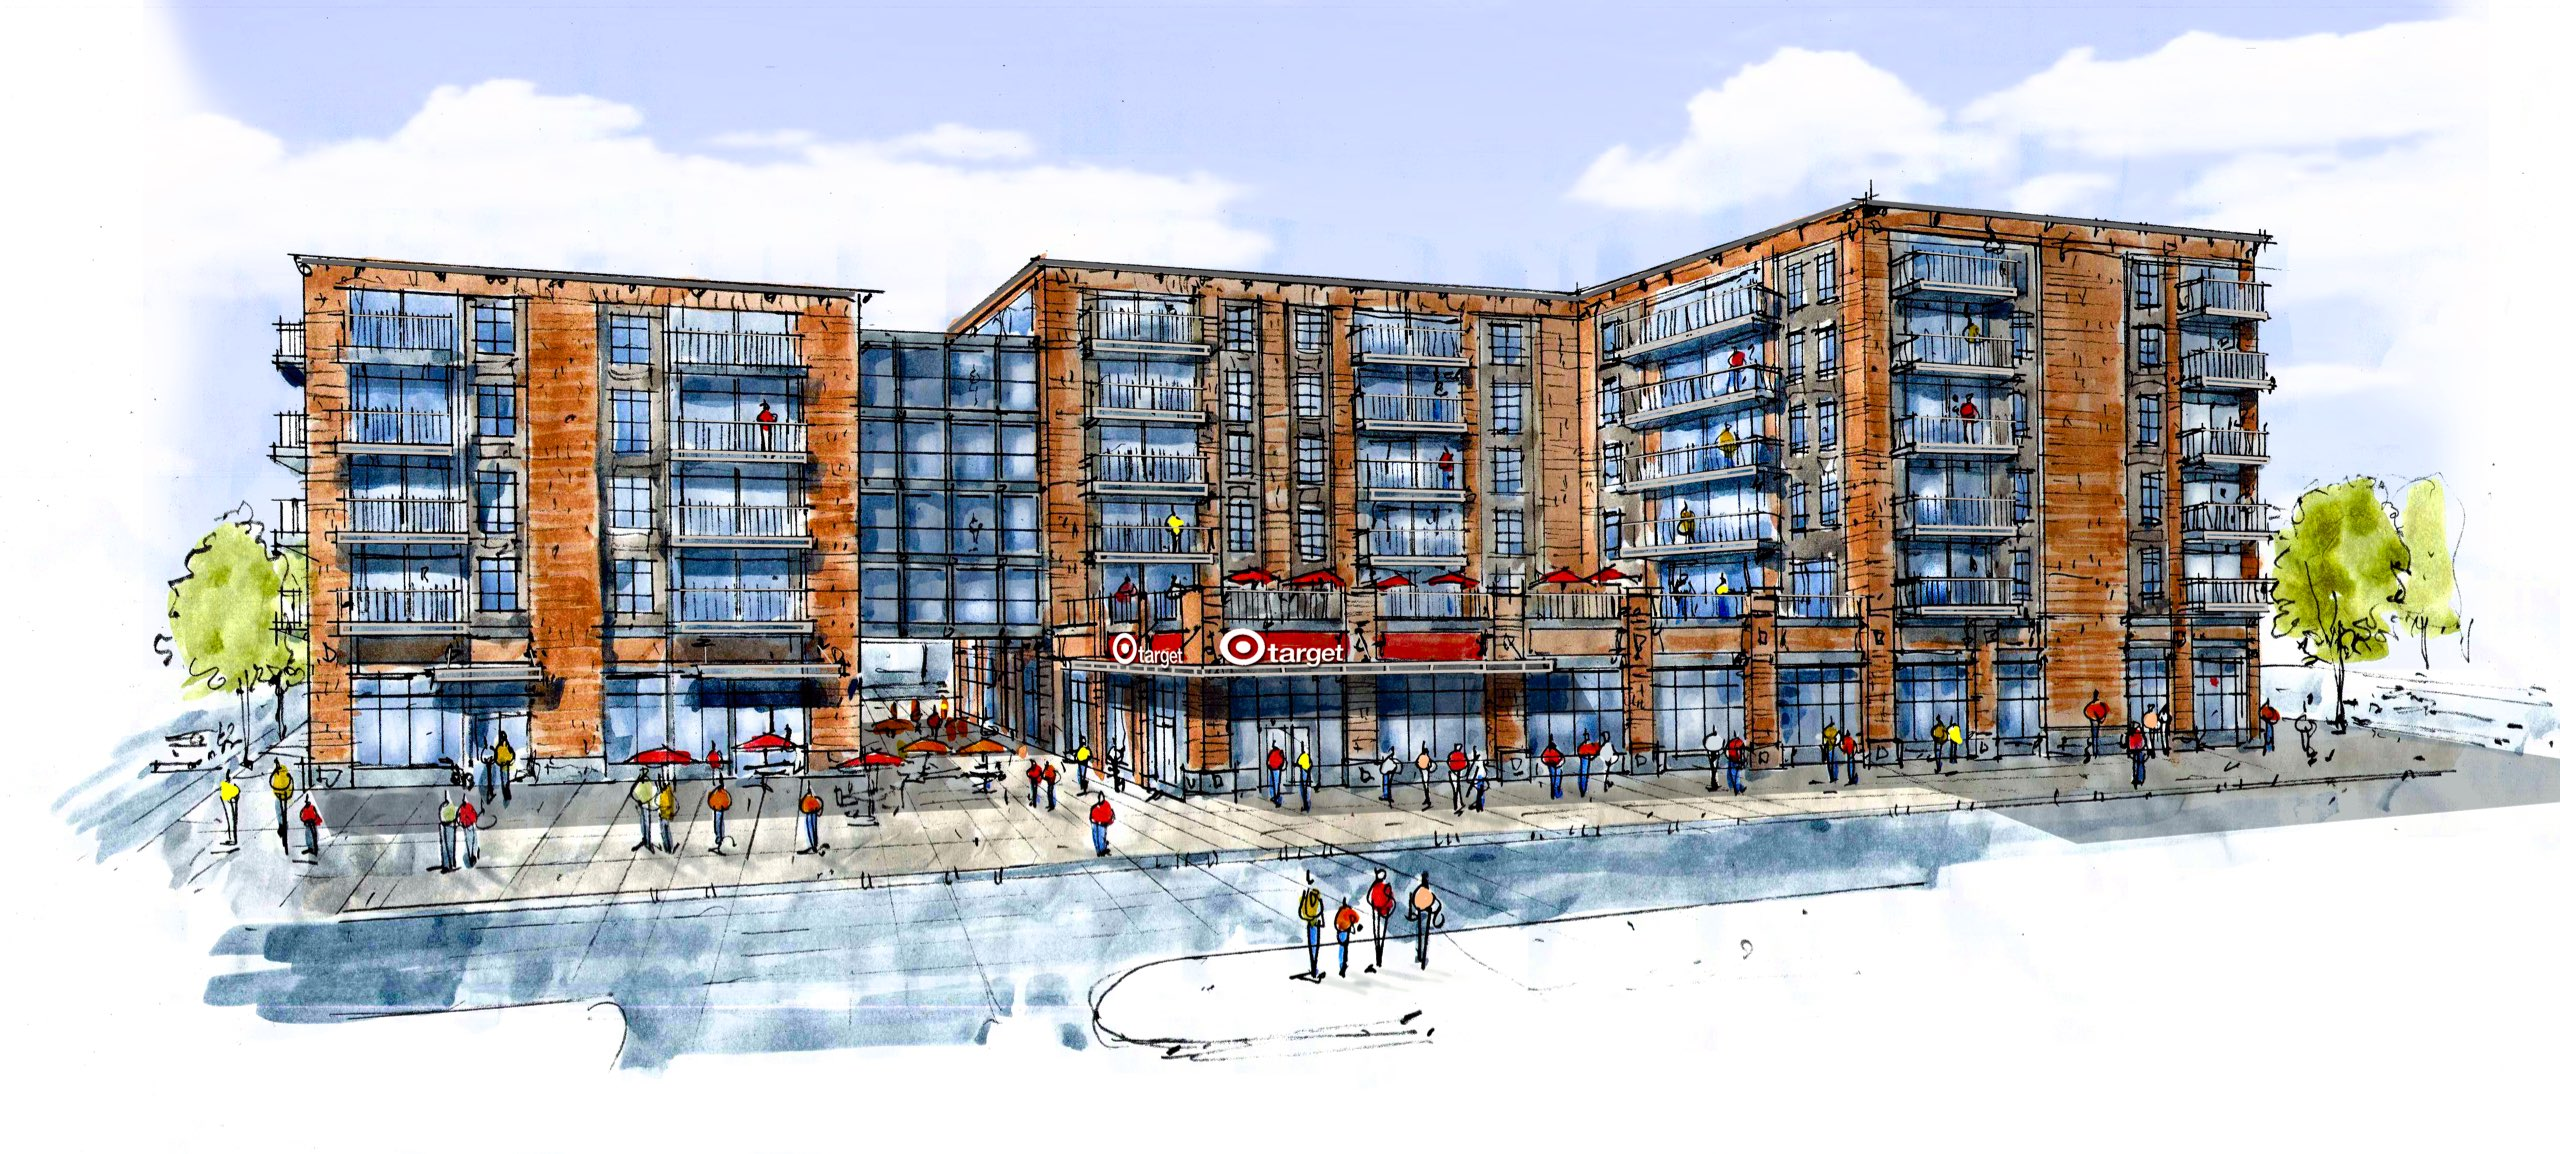 Target rendering at Redstone Commercial Core in Park City, Utah, architectural design by Rendering of Redstone Commercial Core in Park City, Utah, architectural design by Elliott Workgroup